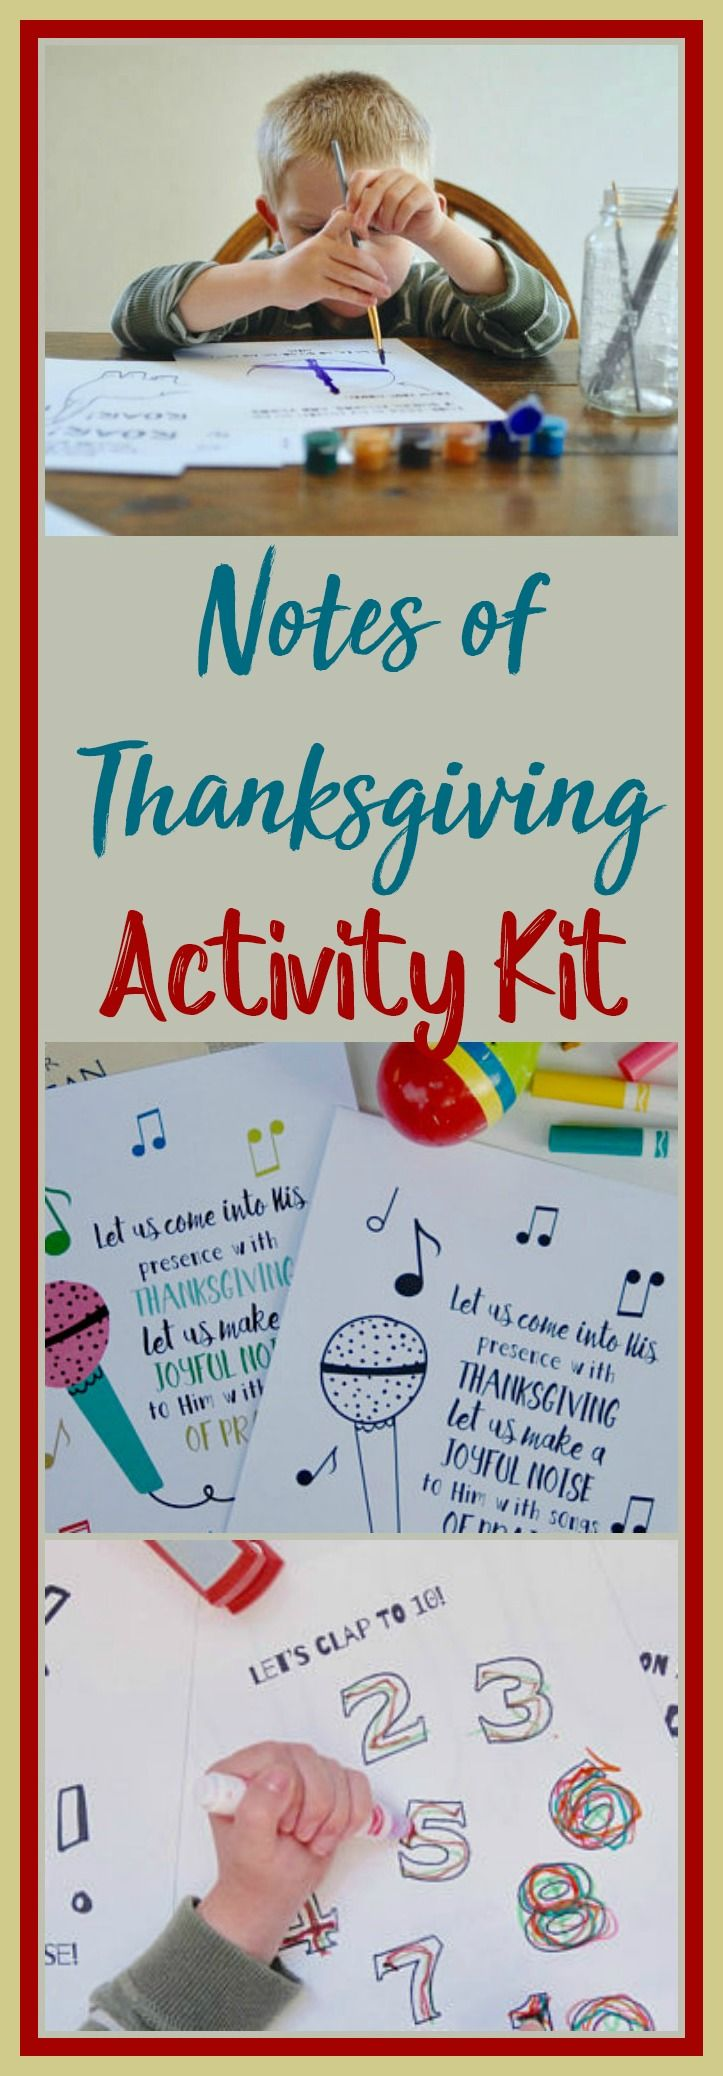 """Thank You God - My Book of Praise! Notes of Thanksgiving Activity Kit for Kids 